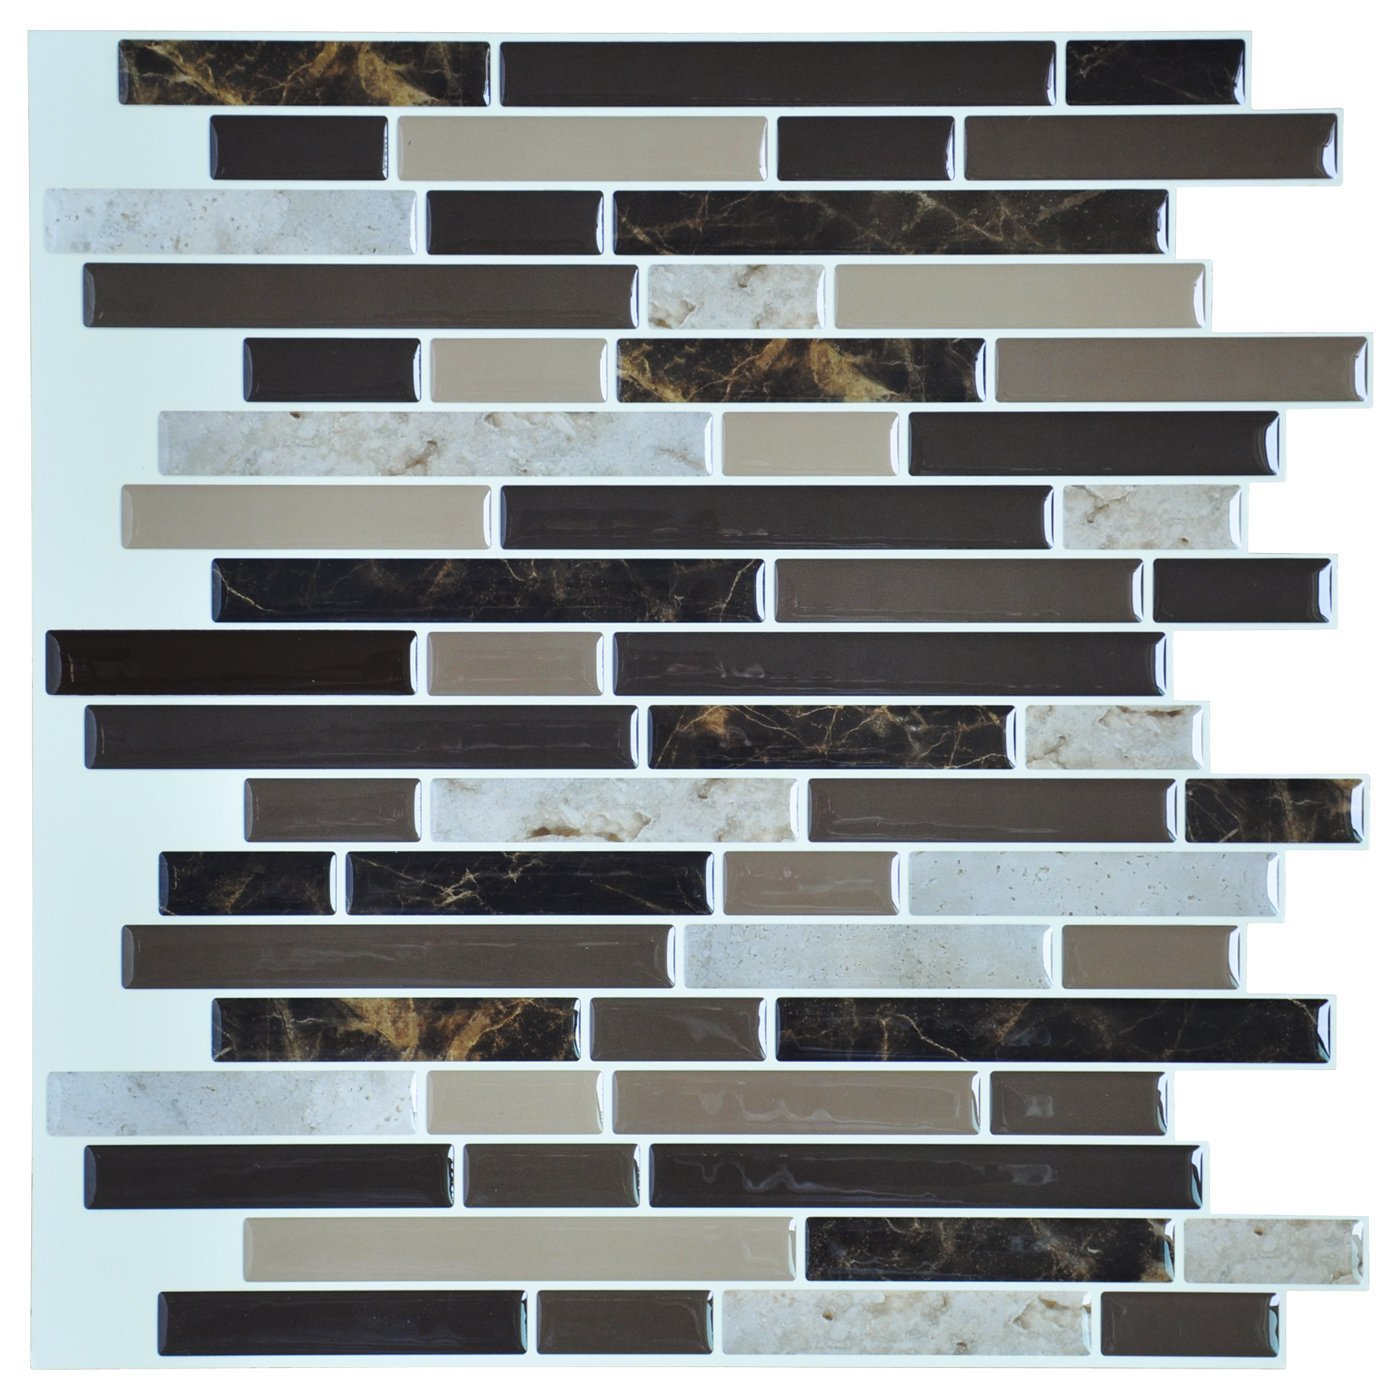 """Art3d 12""""x12"""" Self Adhesive Wall Tile Peel and Stick Backsplash for Kitchen, Long Marble Design (6 Pack)"""